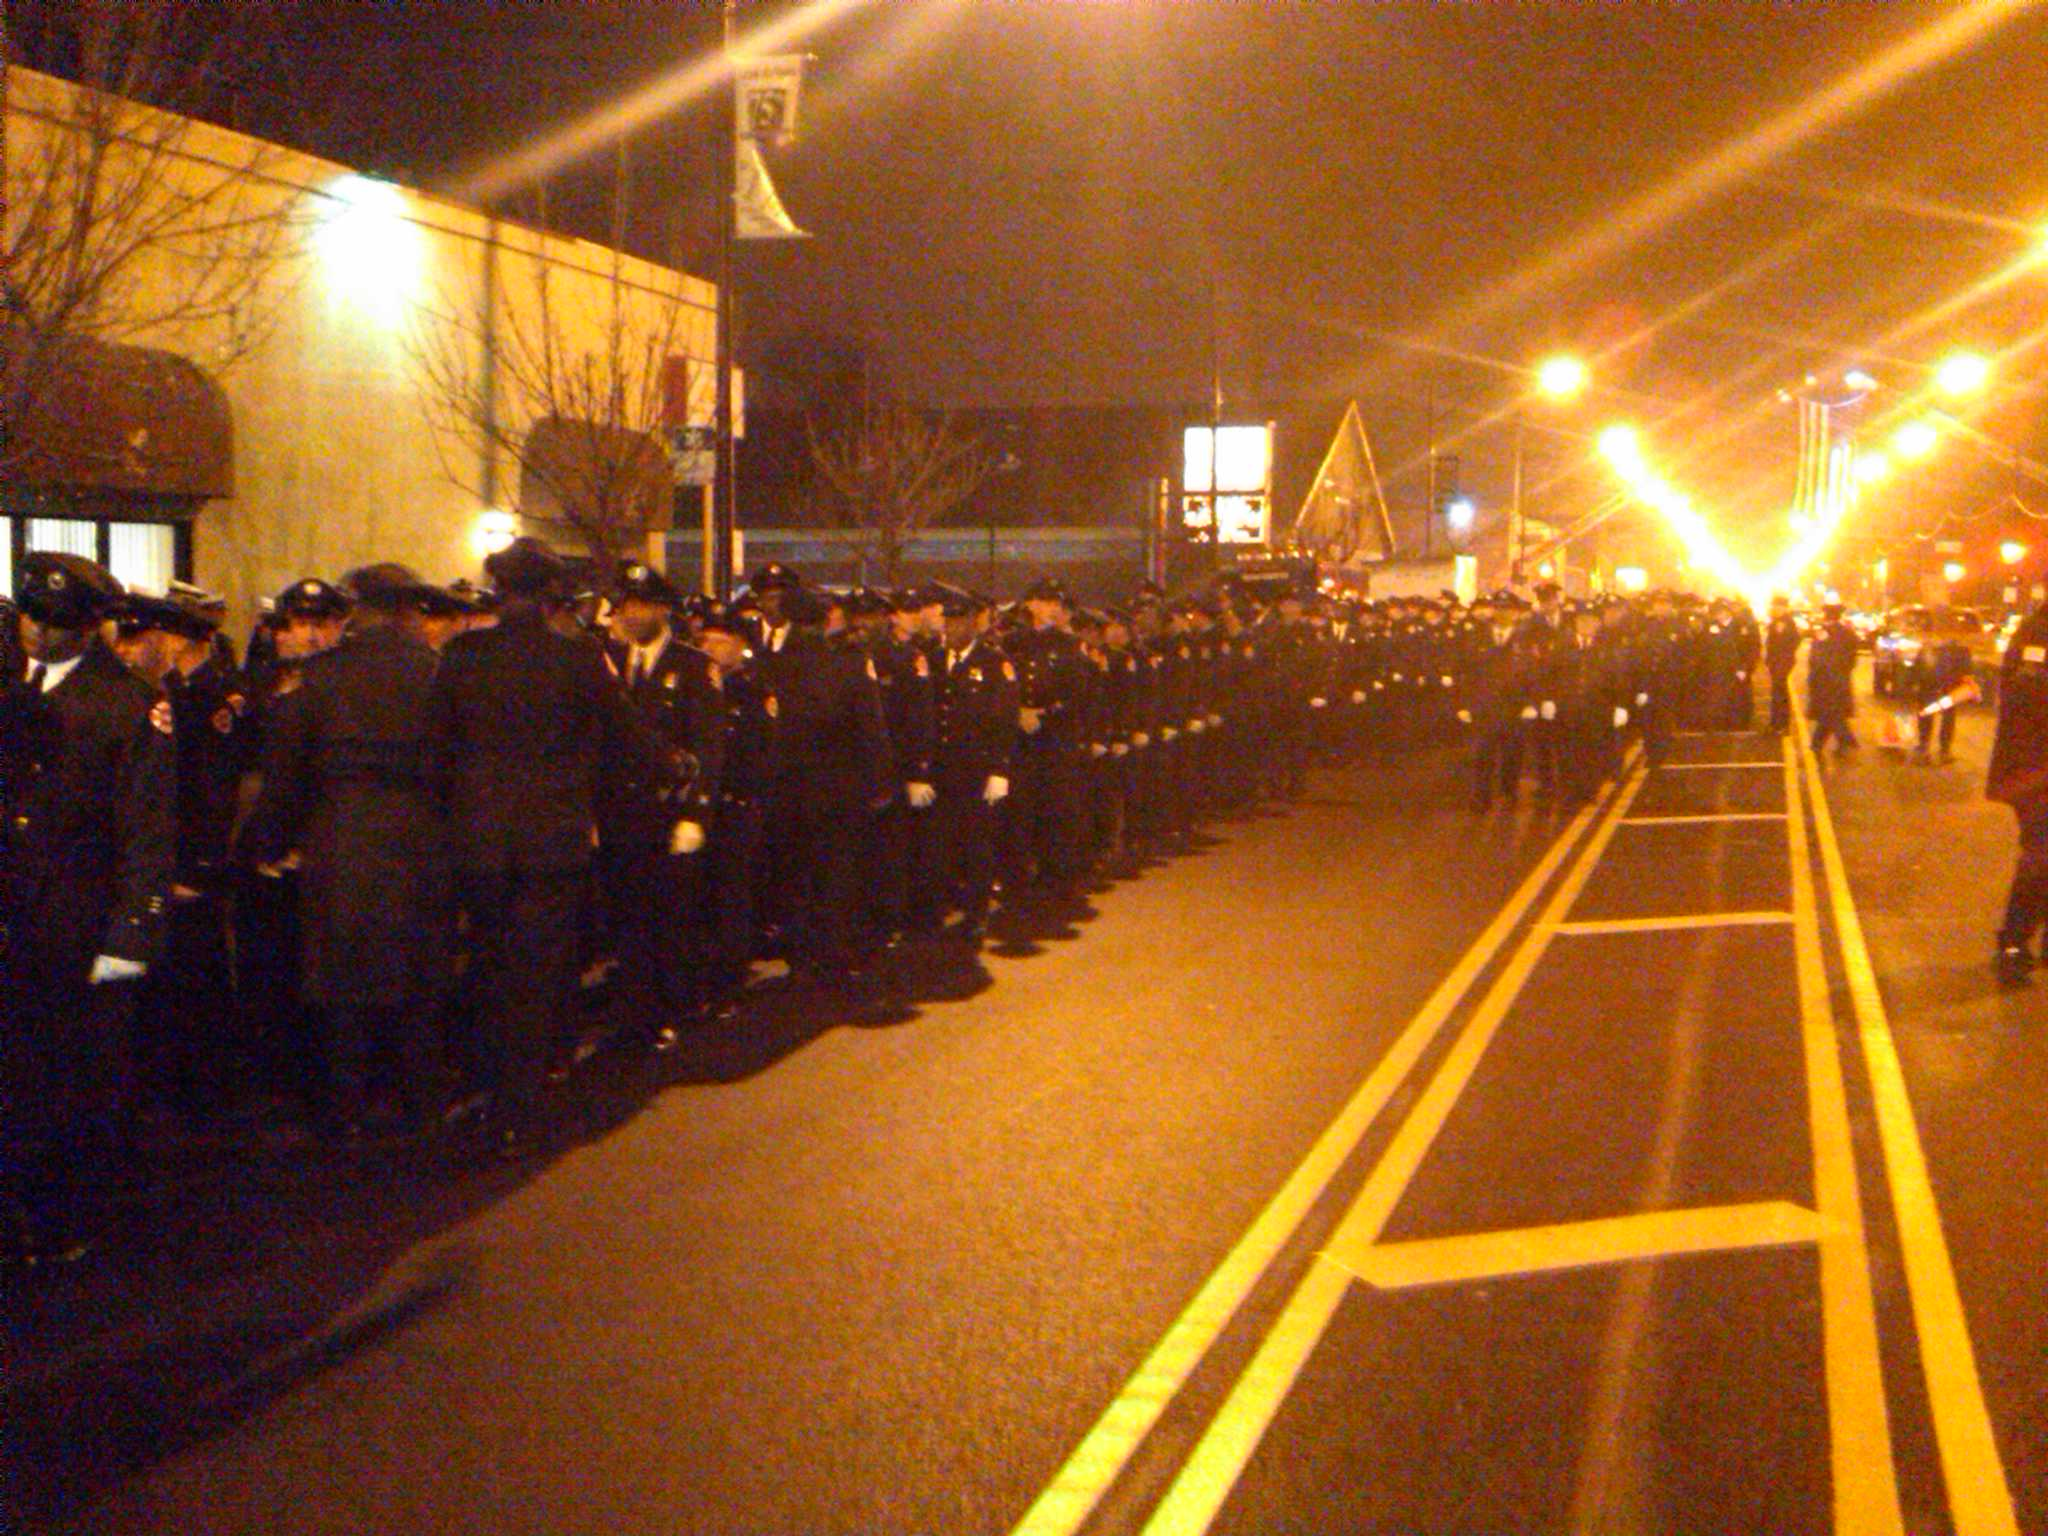 visitation for Chicago Firefighter Walter Patmon, Jr